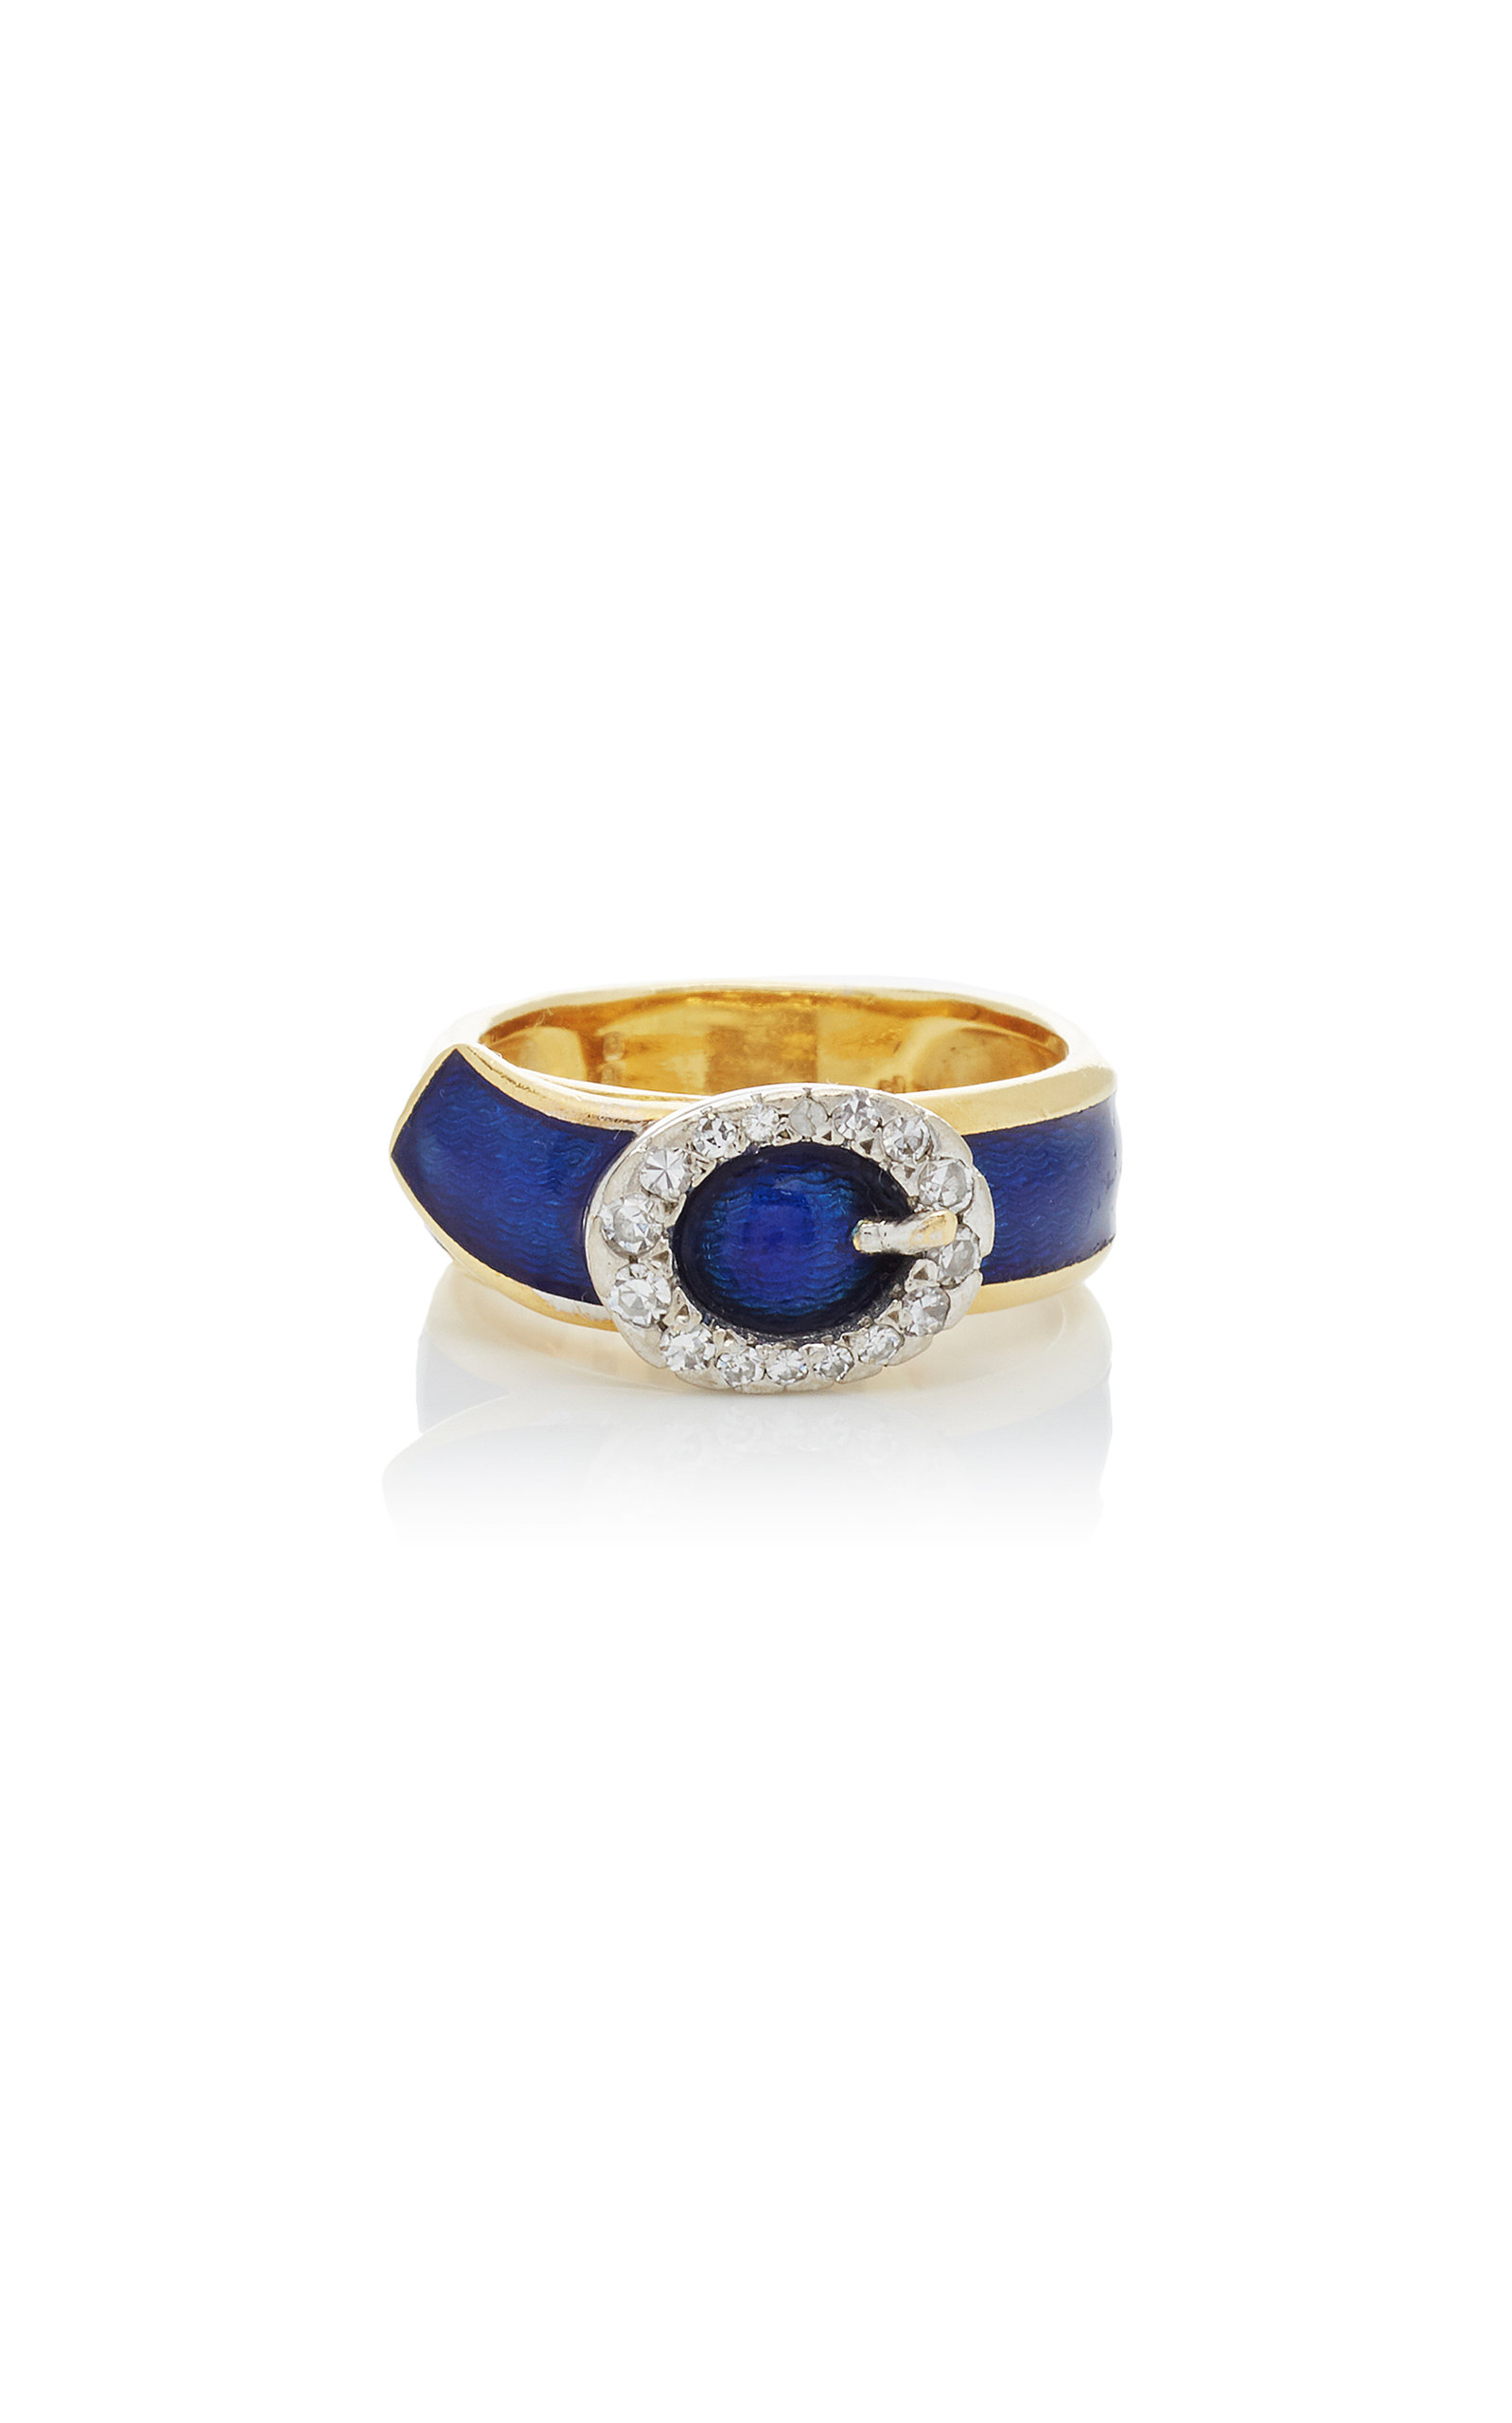 MAHNAZ COLLECTION LIMITED EDITION DIAMOND AND ENAMEL ON 18K GOLD BUCKLE RING BY KUTCHINSKY C.1972